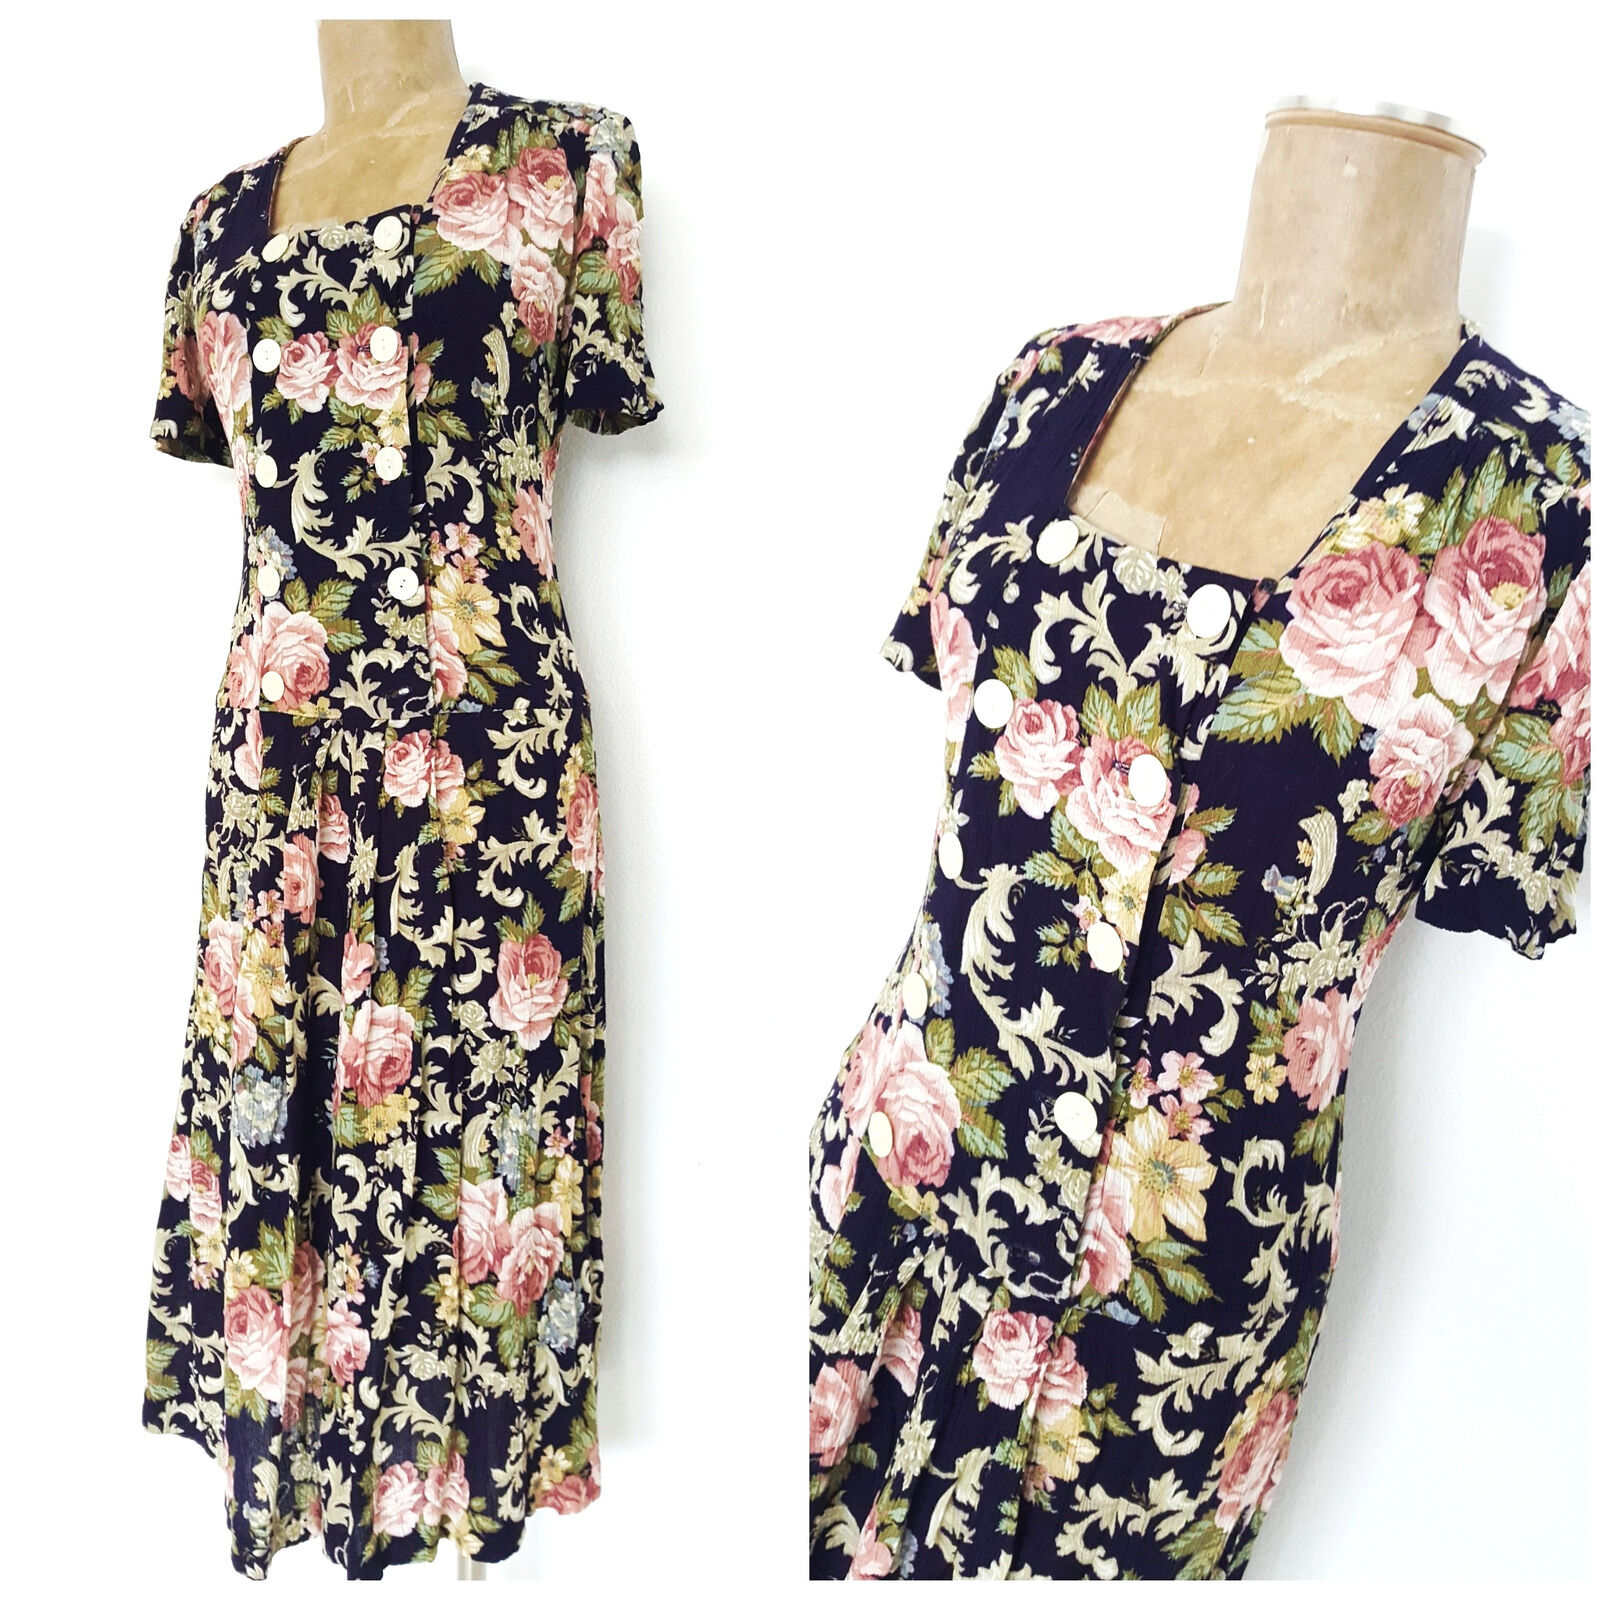 Vintage 80s Leslie Fay Wrap Dress Größe Medium Floral Midi Double Breasted